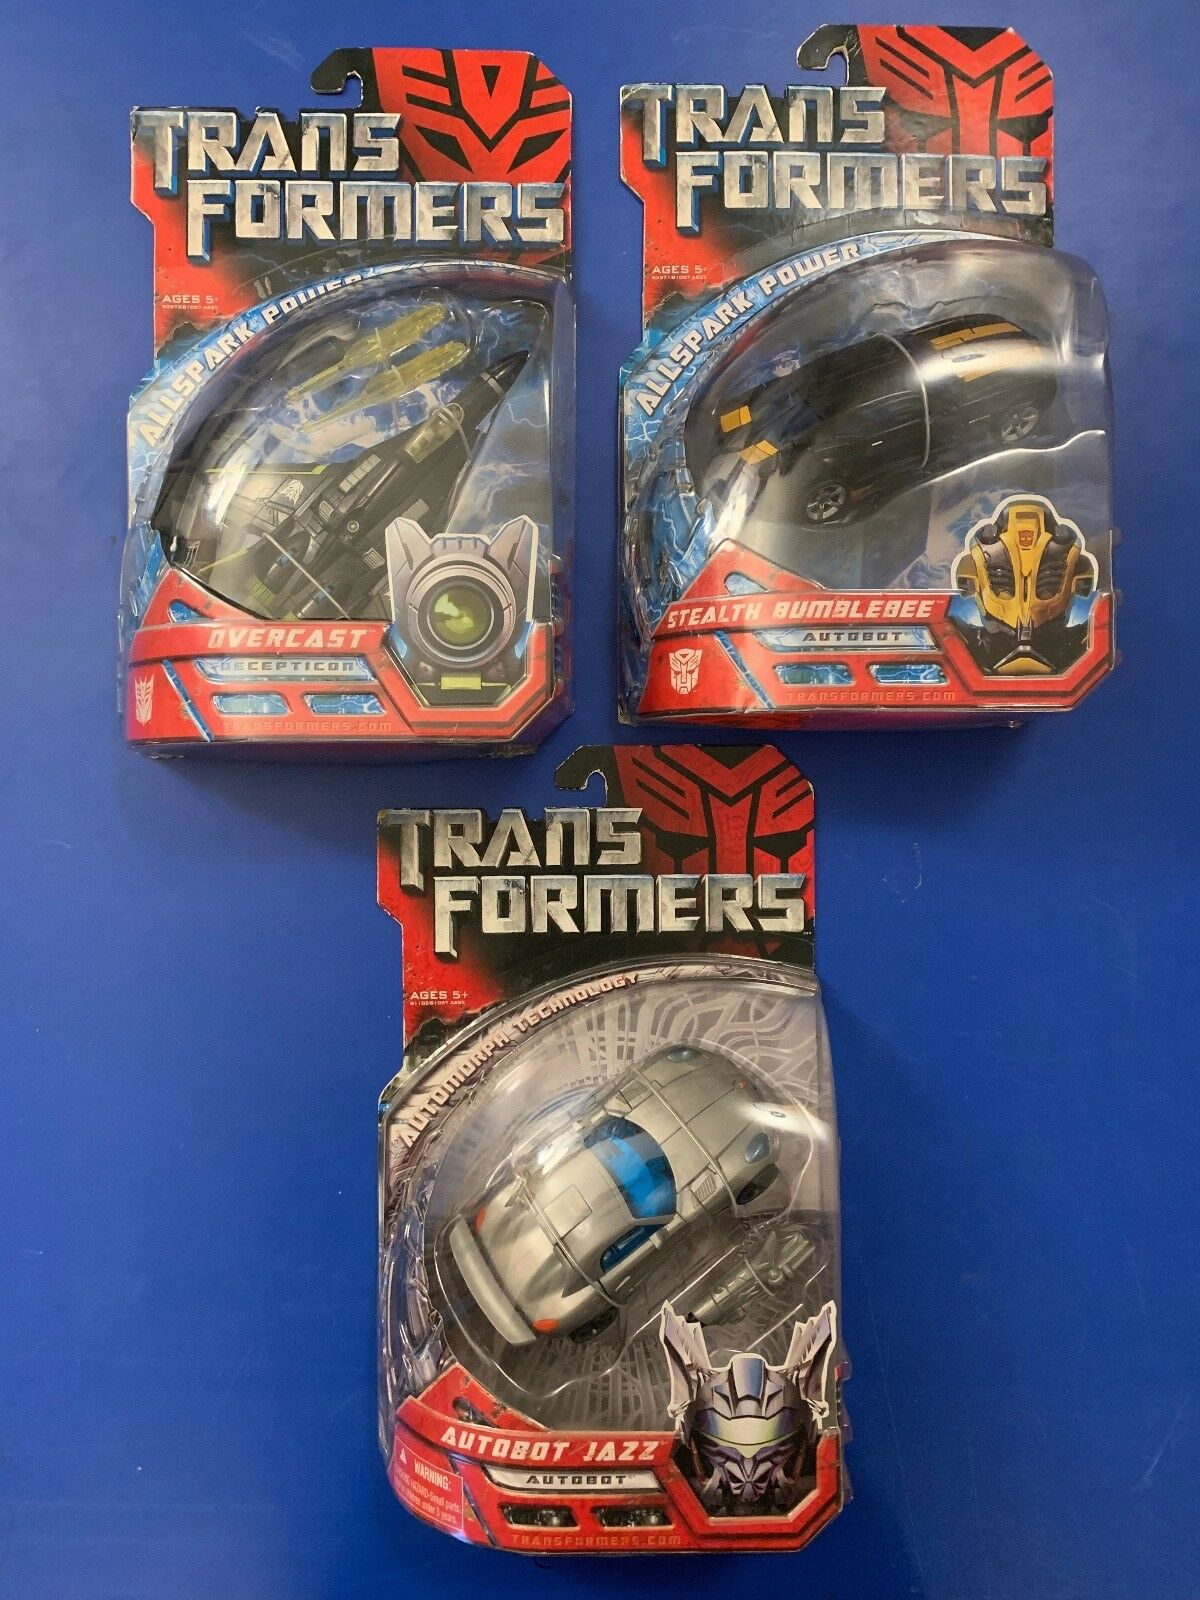 TRANSFORMERS ALLSPARK POWER STEALTH BUMBLEBEE OVERCAST AUTOAMORPH AUTOBOT JAZZ